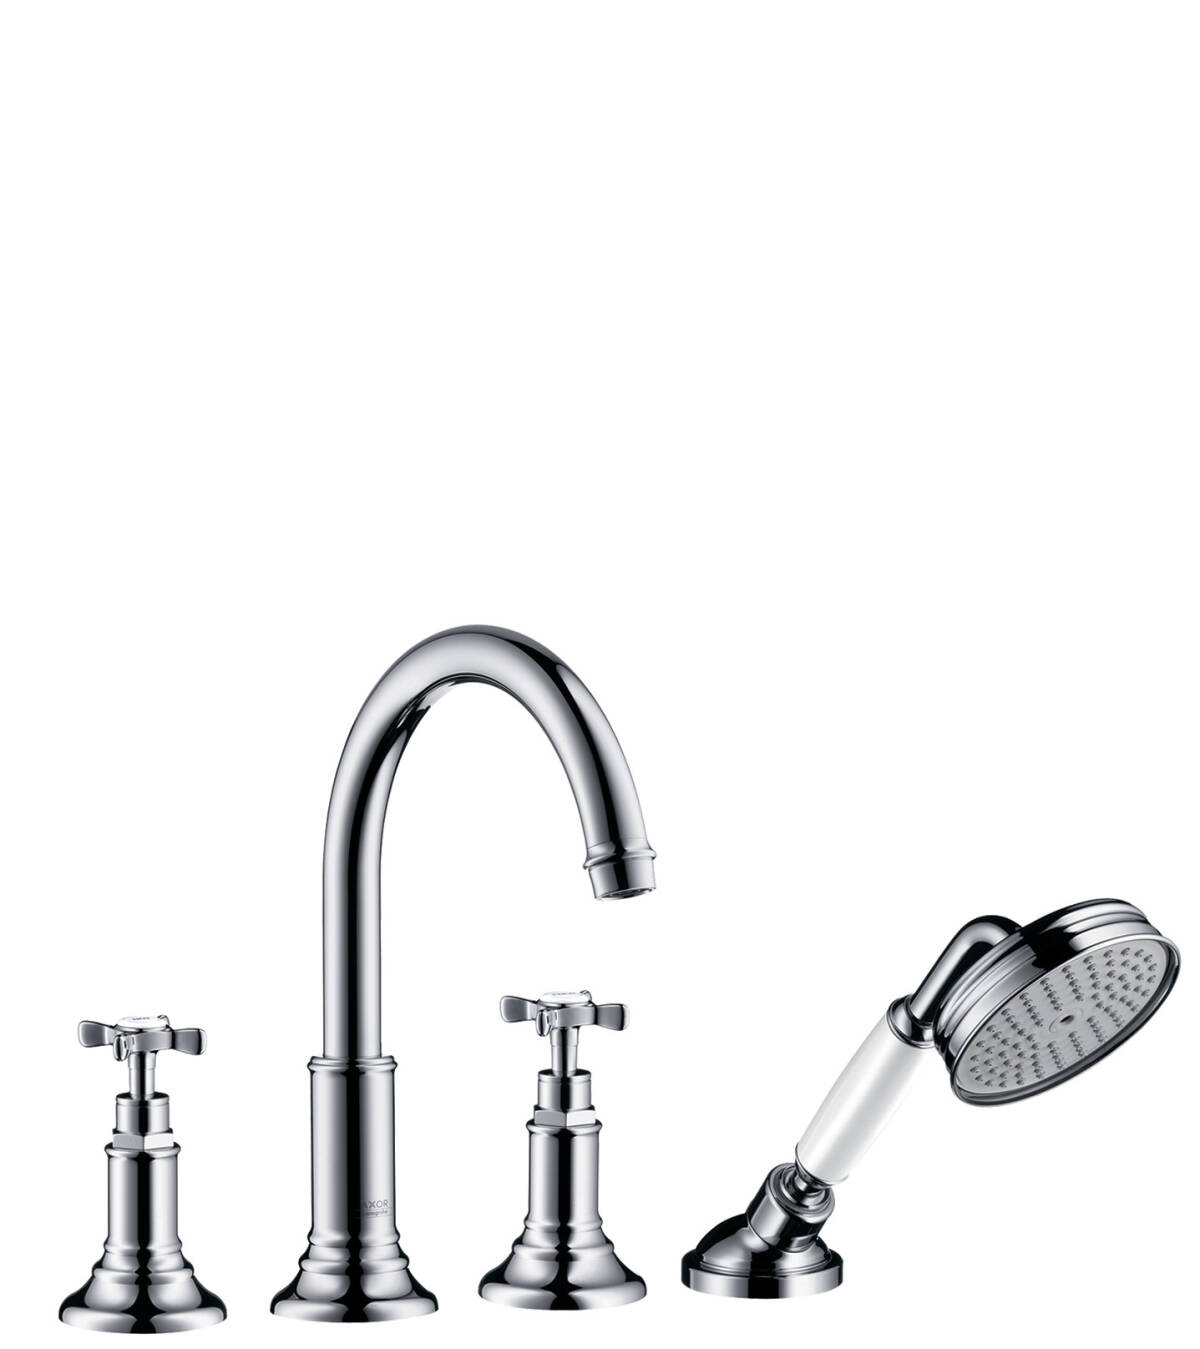 4-hole tile mounted bath mixer with cross handles, Brushed Gold Optic, 16544250